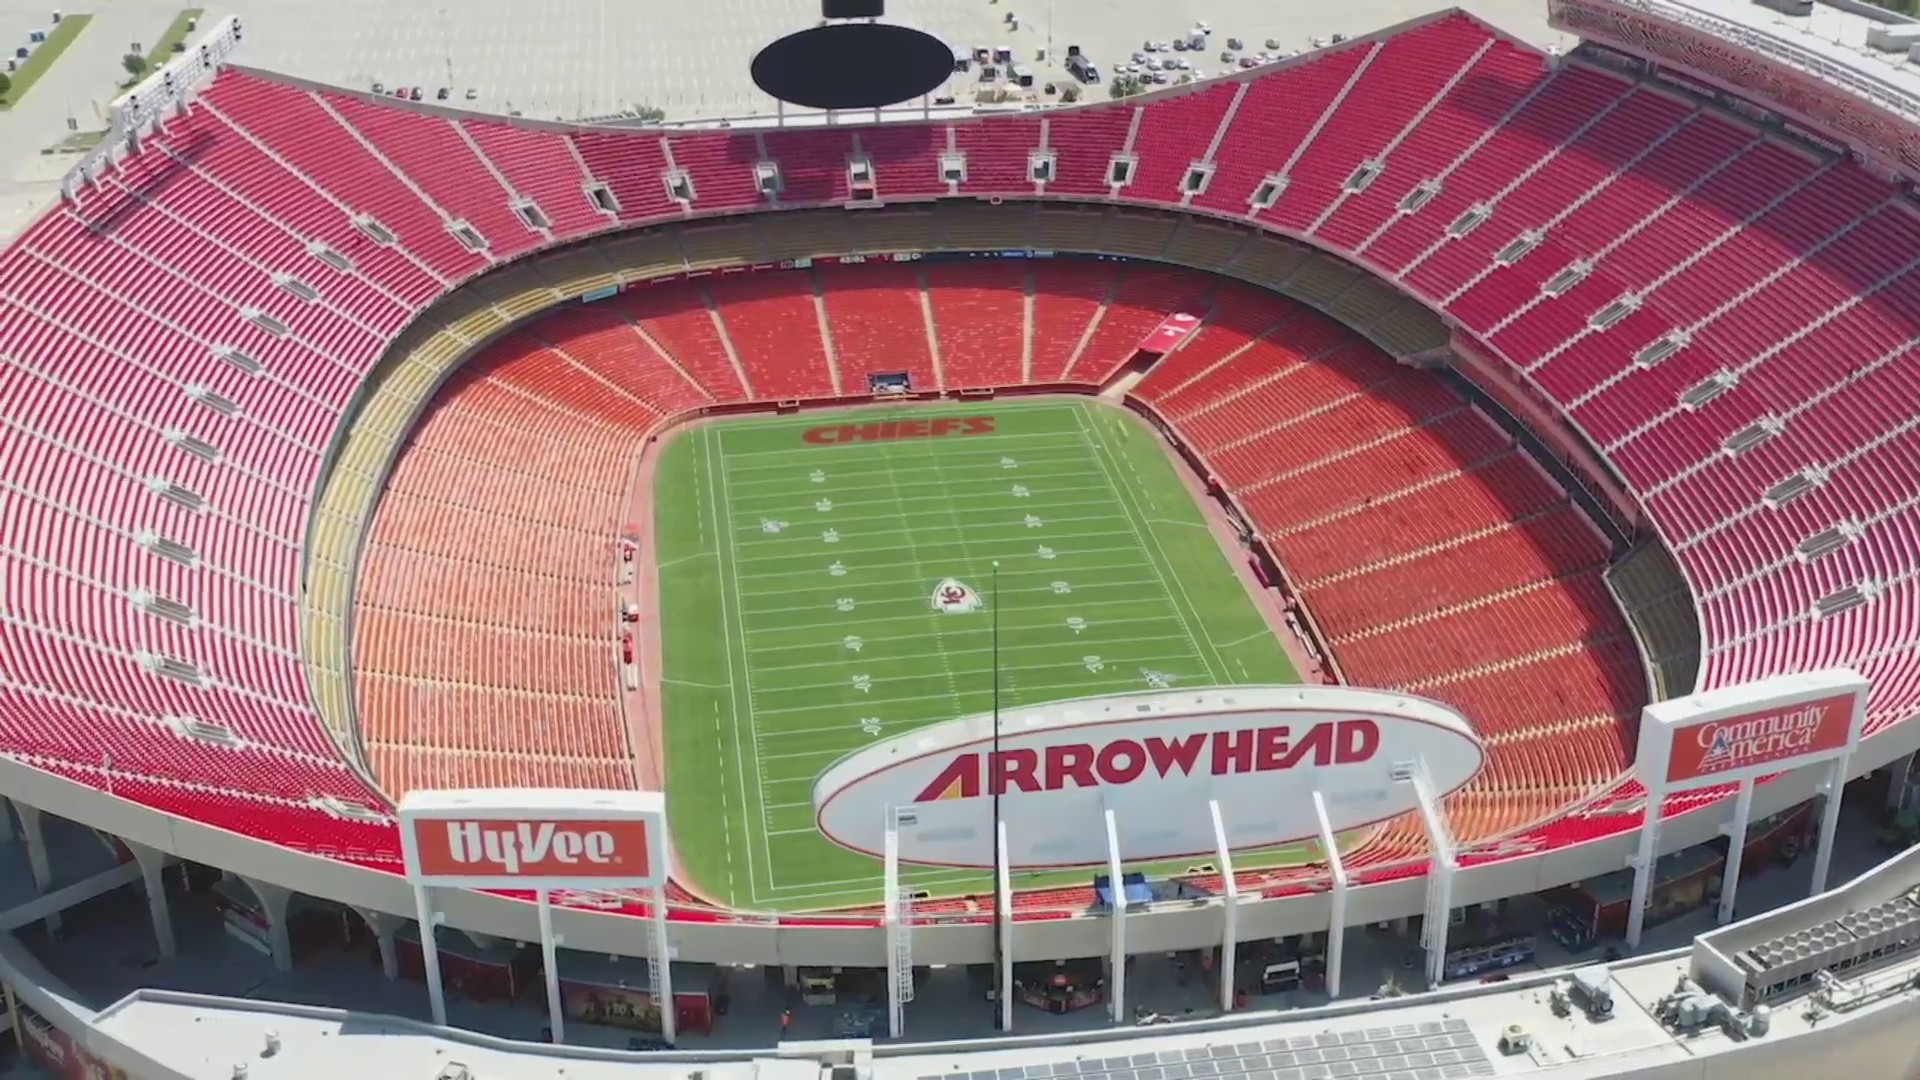 Aerial picture of Arrowhead